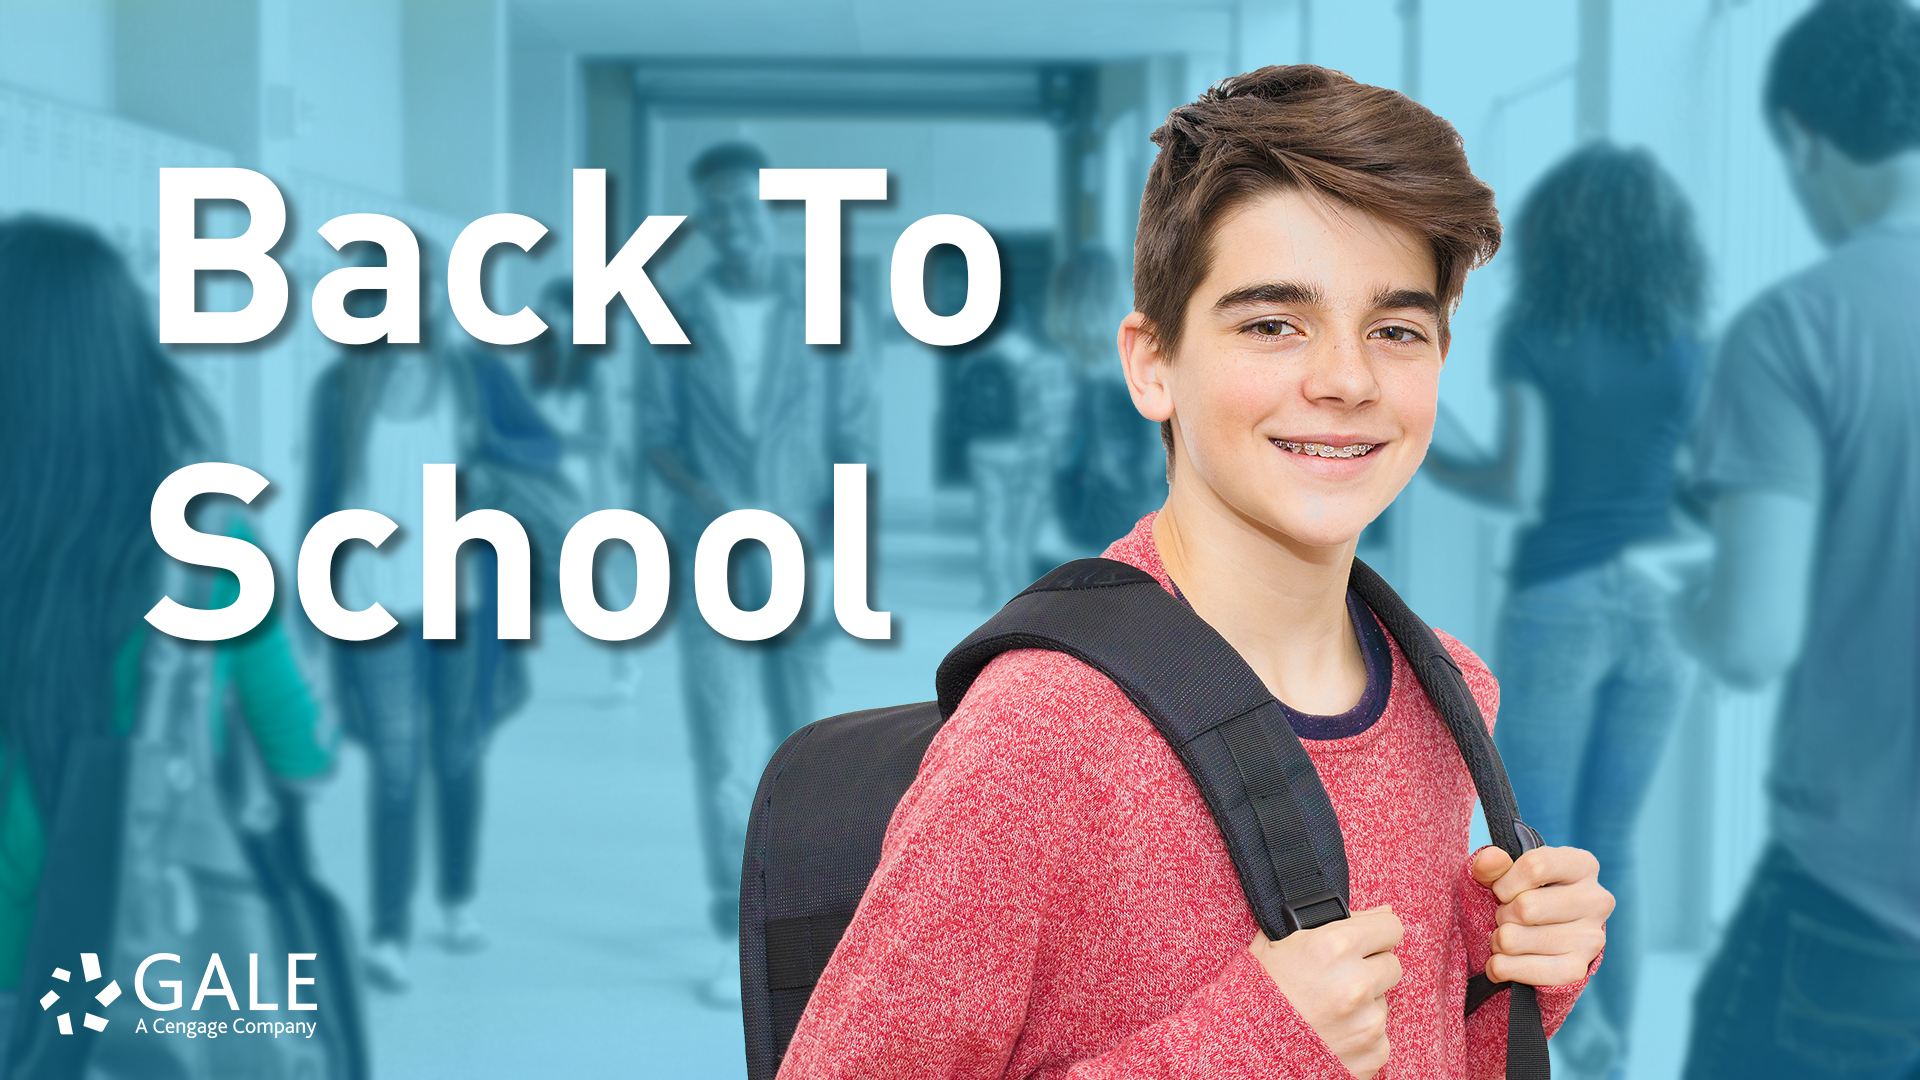 Back To School with MARVEL Thumbnail